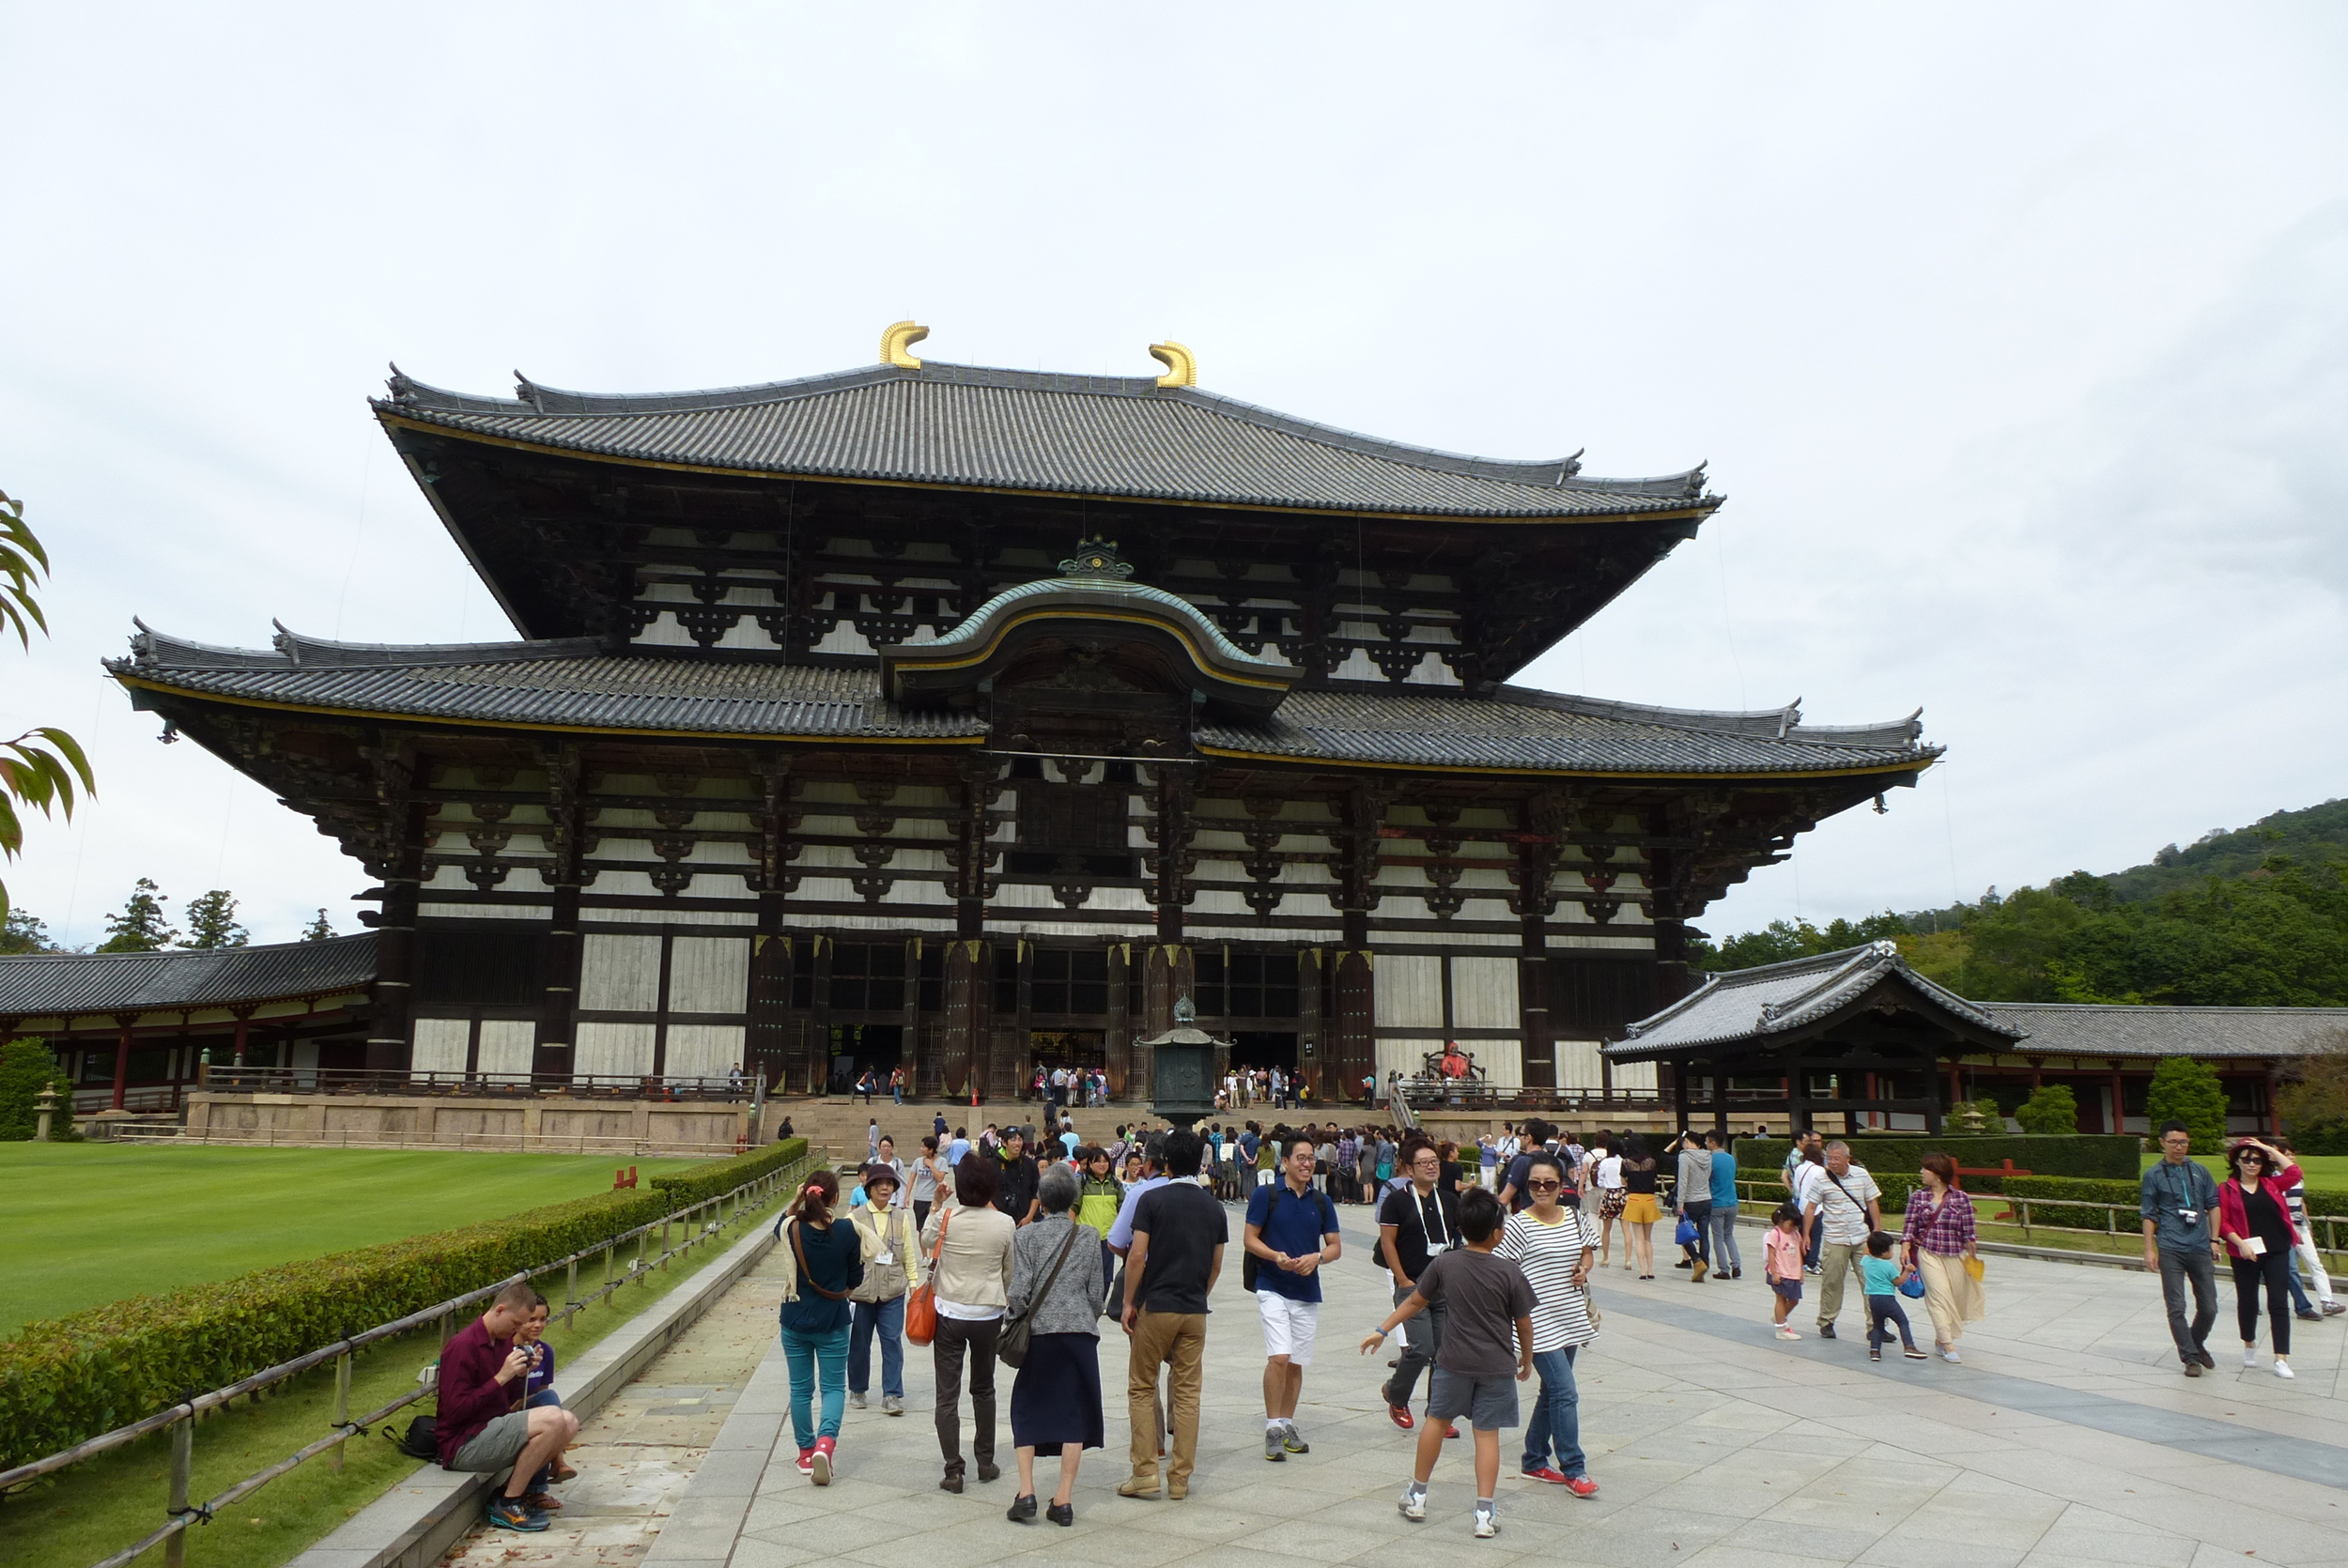 Todaiji Temple, home of the Big Buddha and the world's largest wooden building